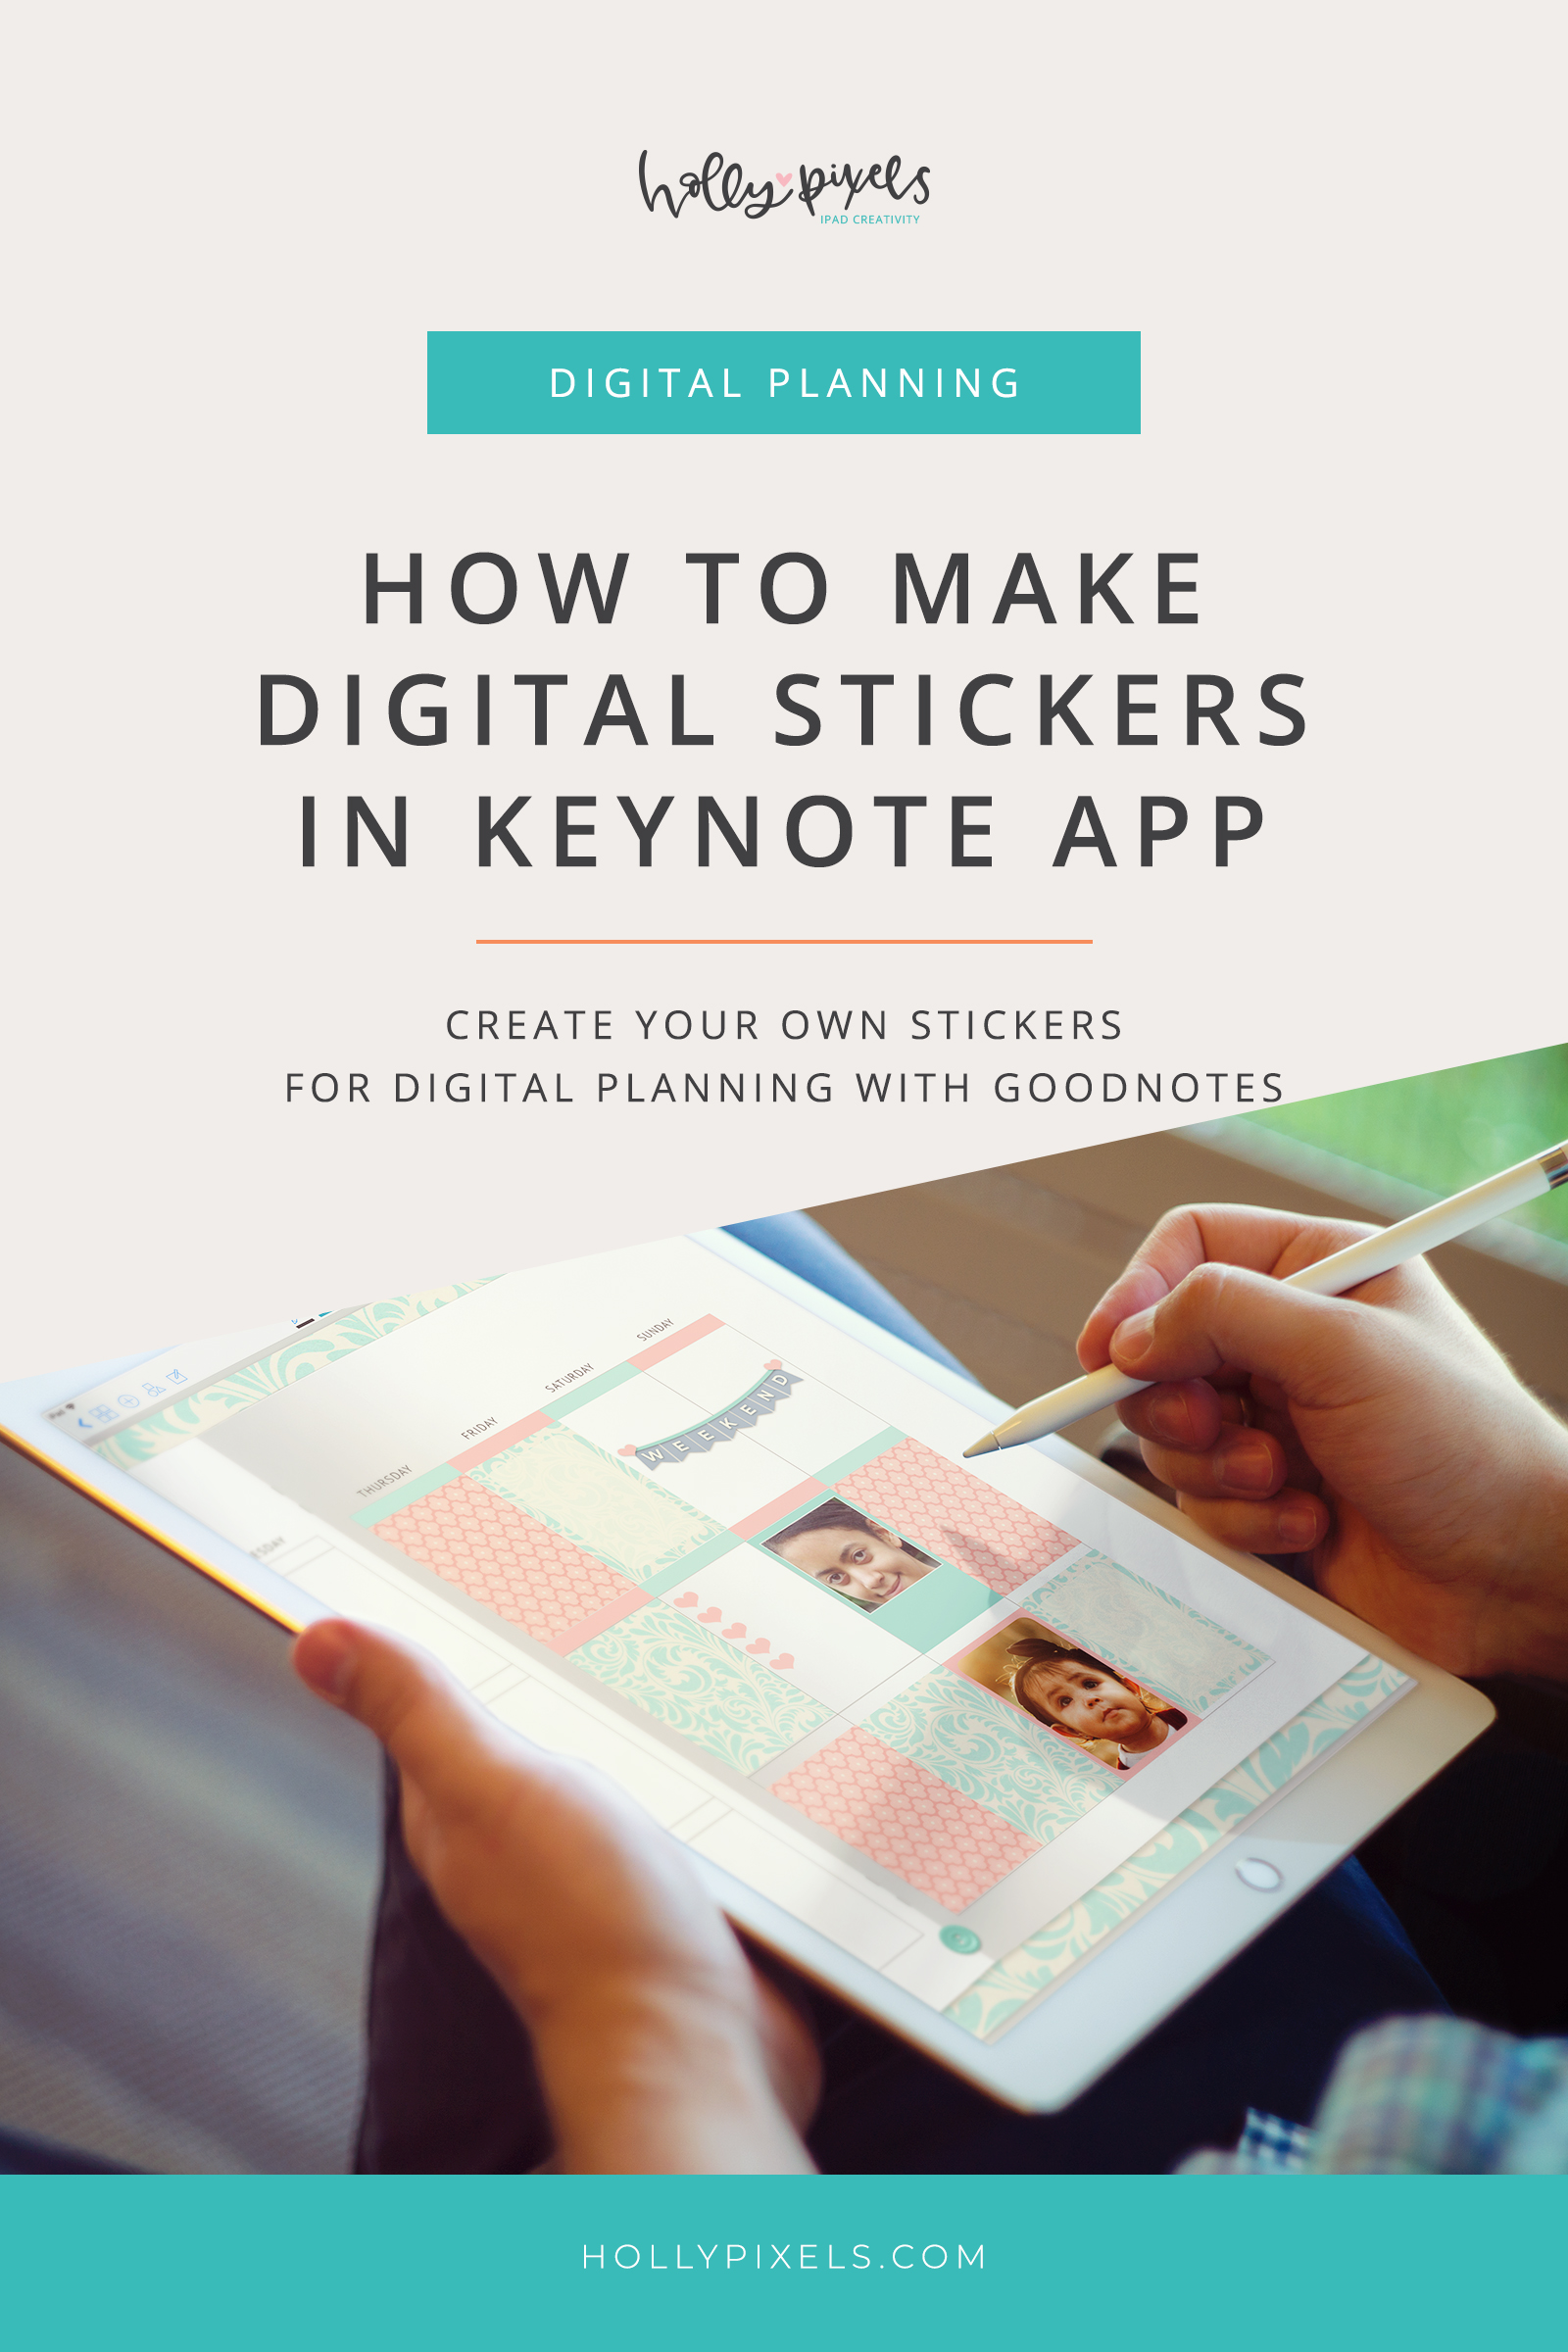 Did you know that you can use KeyNote to create digital stickers for GoodNotes planners? It's true! This tutorial will show you how to use KeyNote to make fun stickers that you can use in your GoodNotes planners to customize your planning in a fun way!